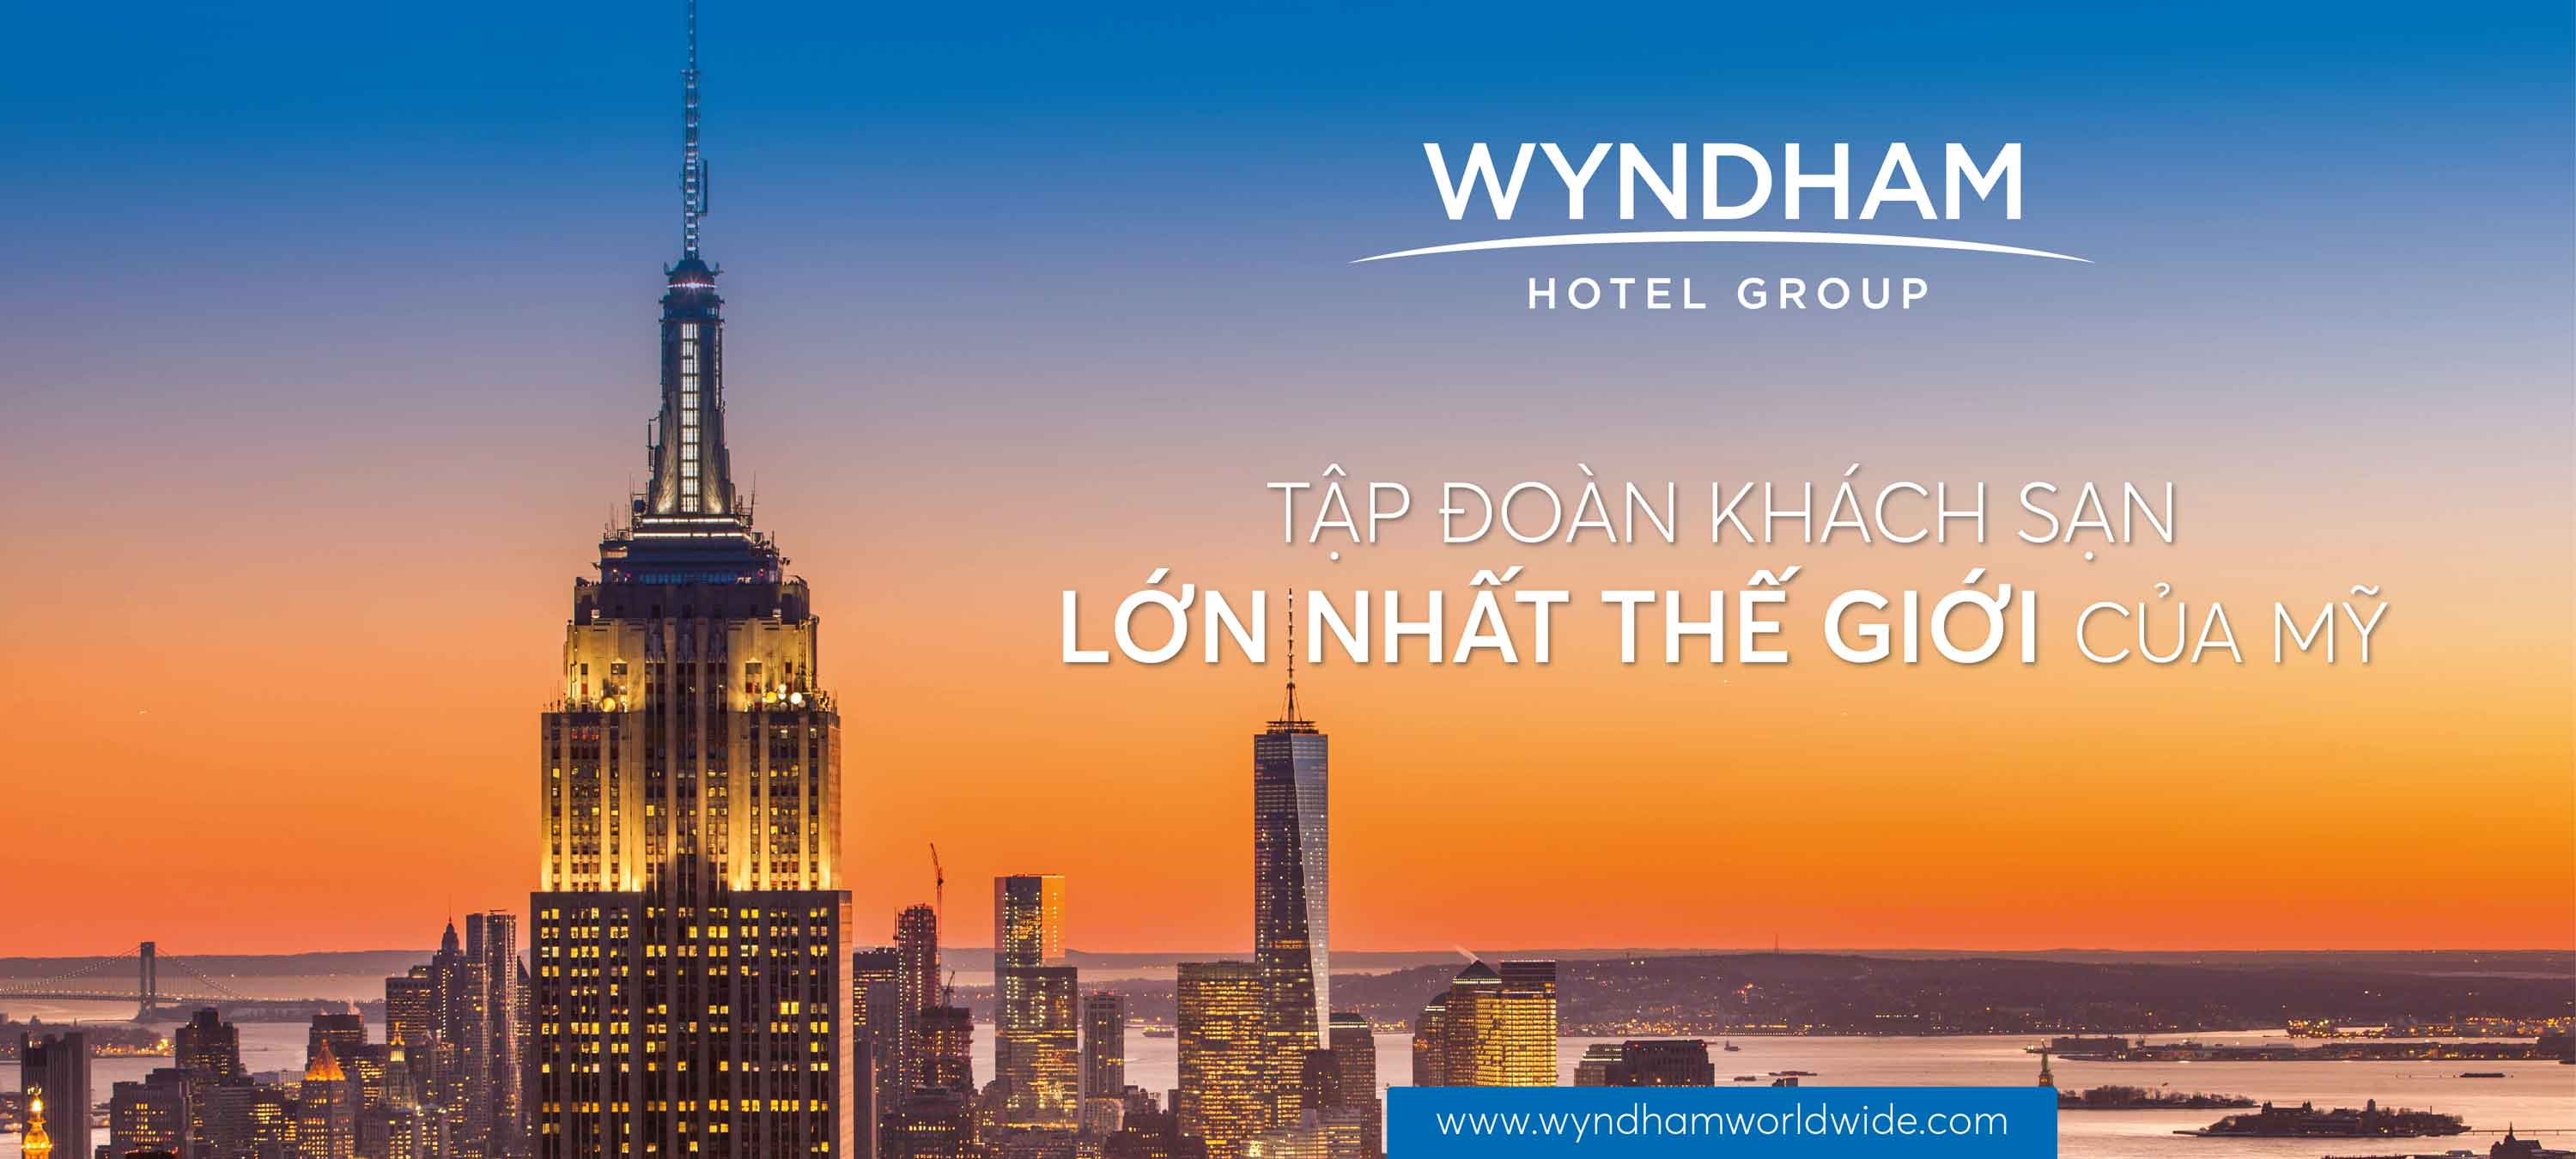 Wyndham-hotel-group